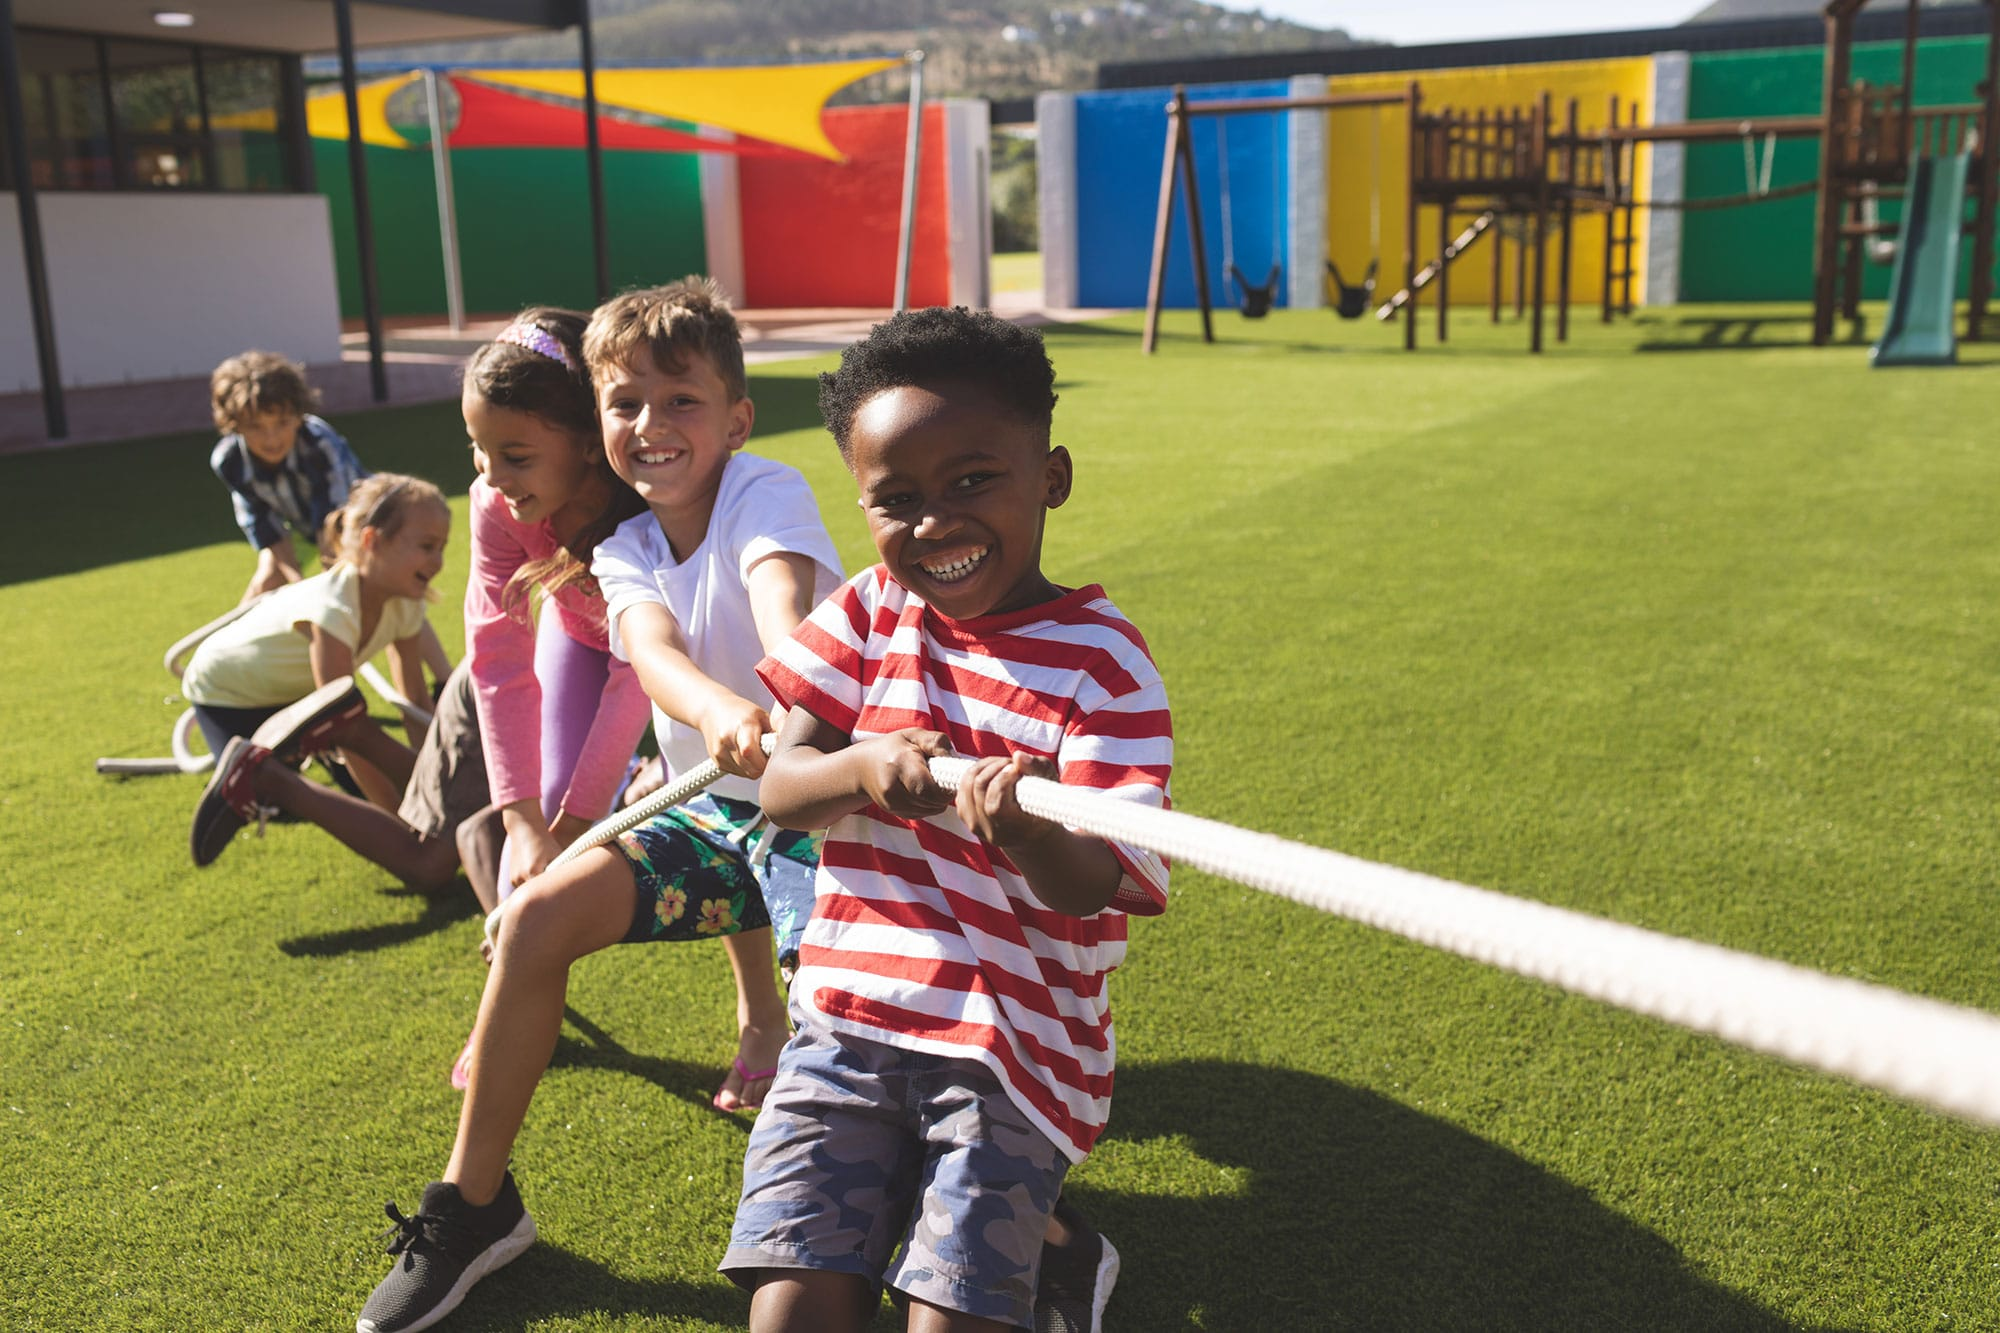 ukactive welcomes £10m investment from Government to open schools for physical activity over holidays and after hours